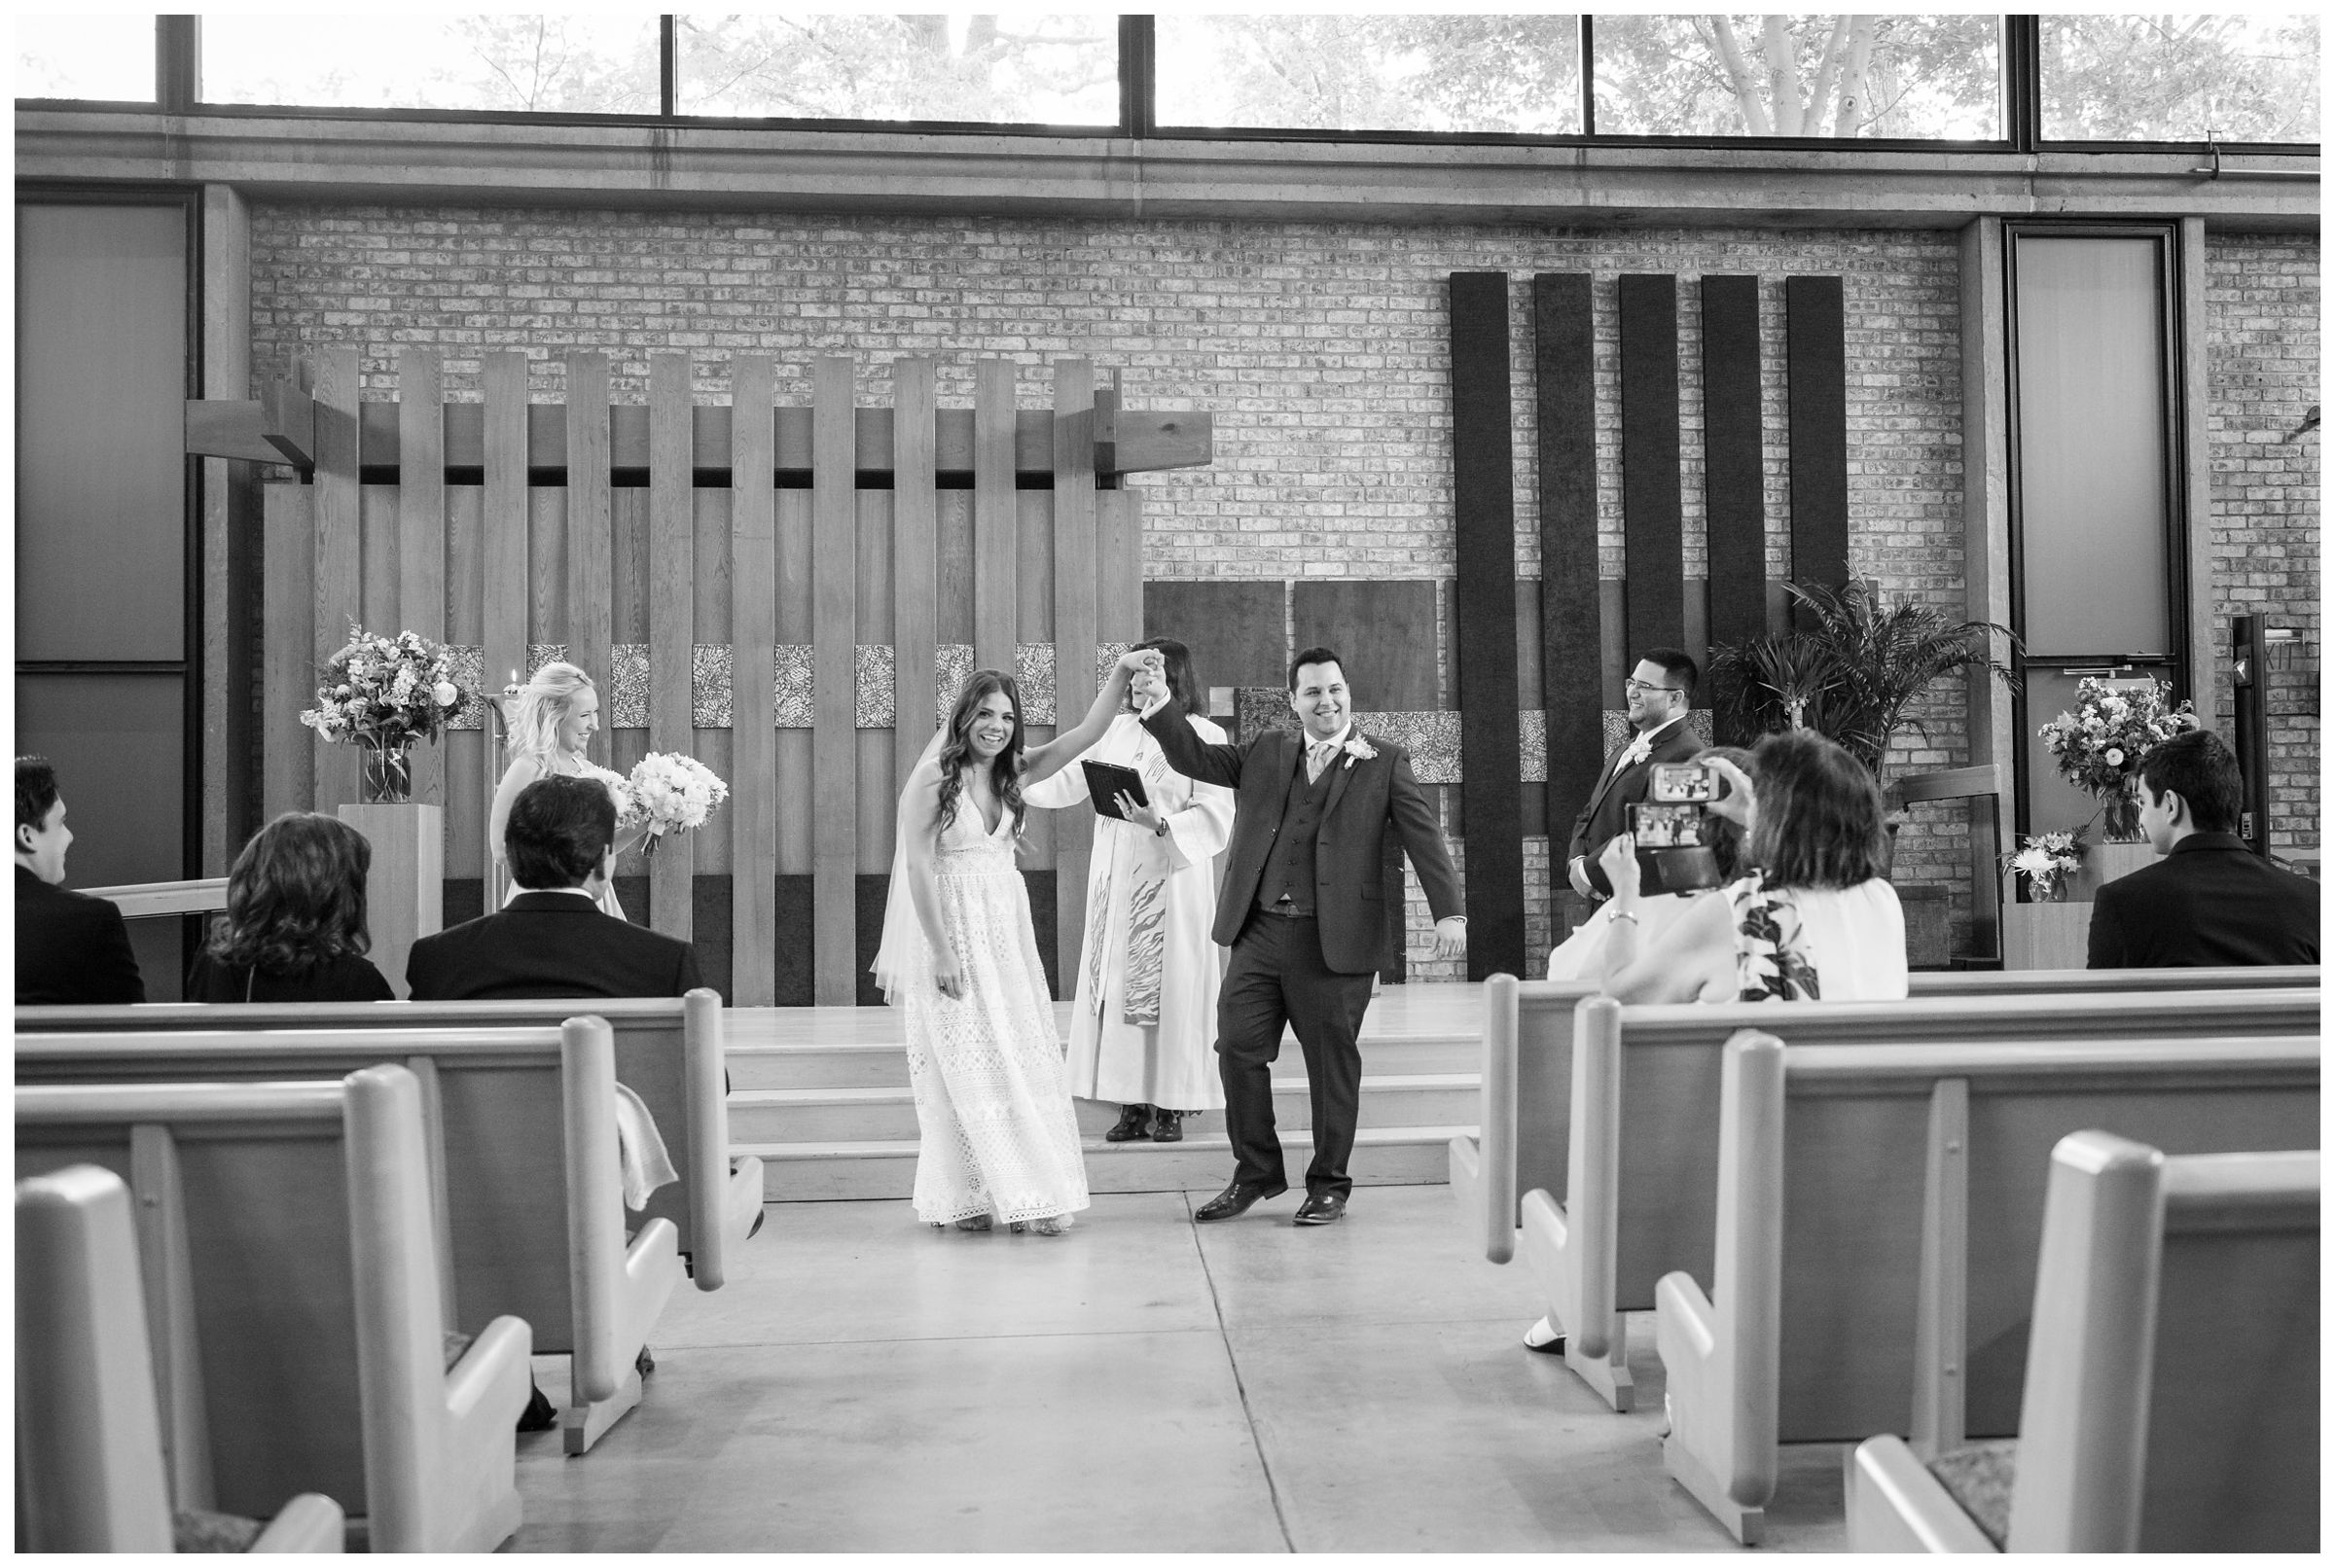 recessional during wedding ceremony at the Unitarian Universalist Church in Arlington, Virginia